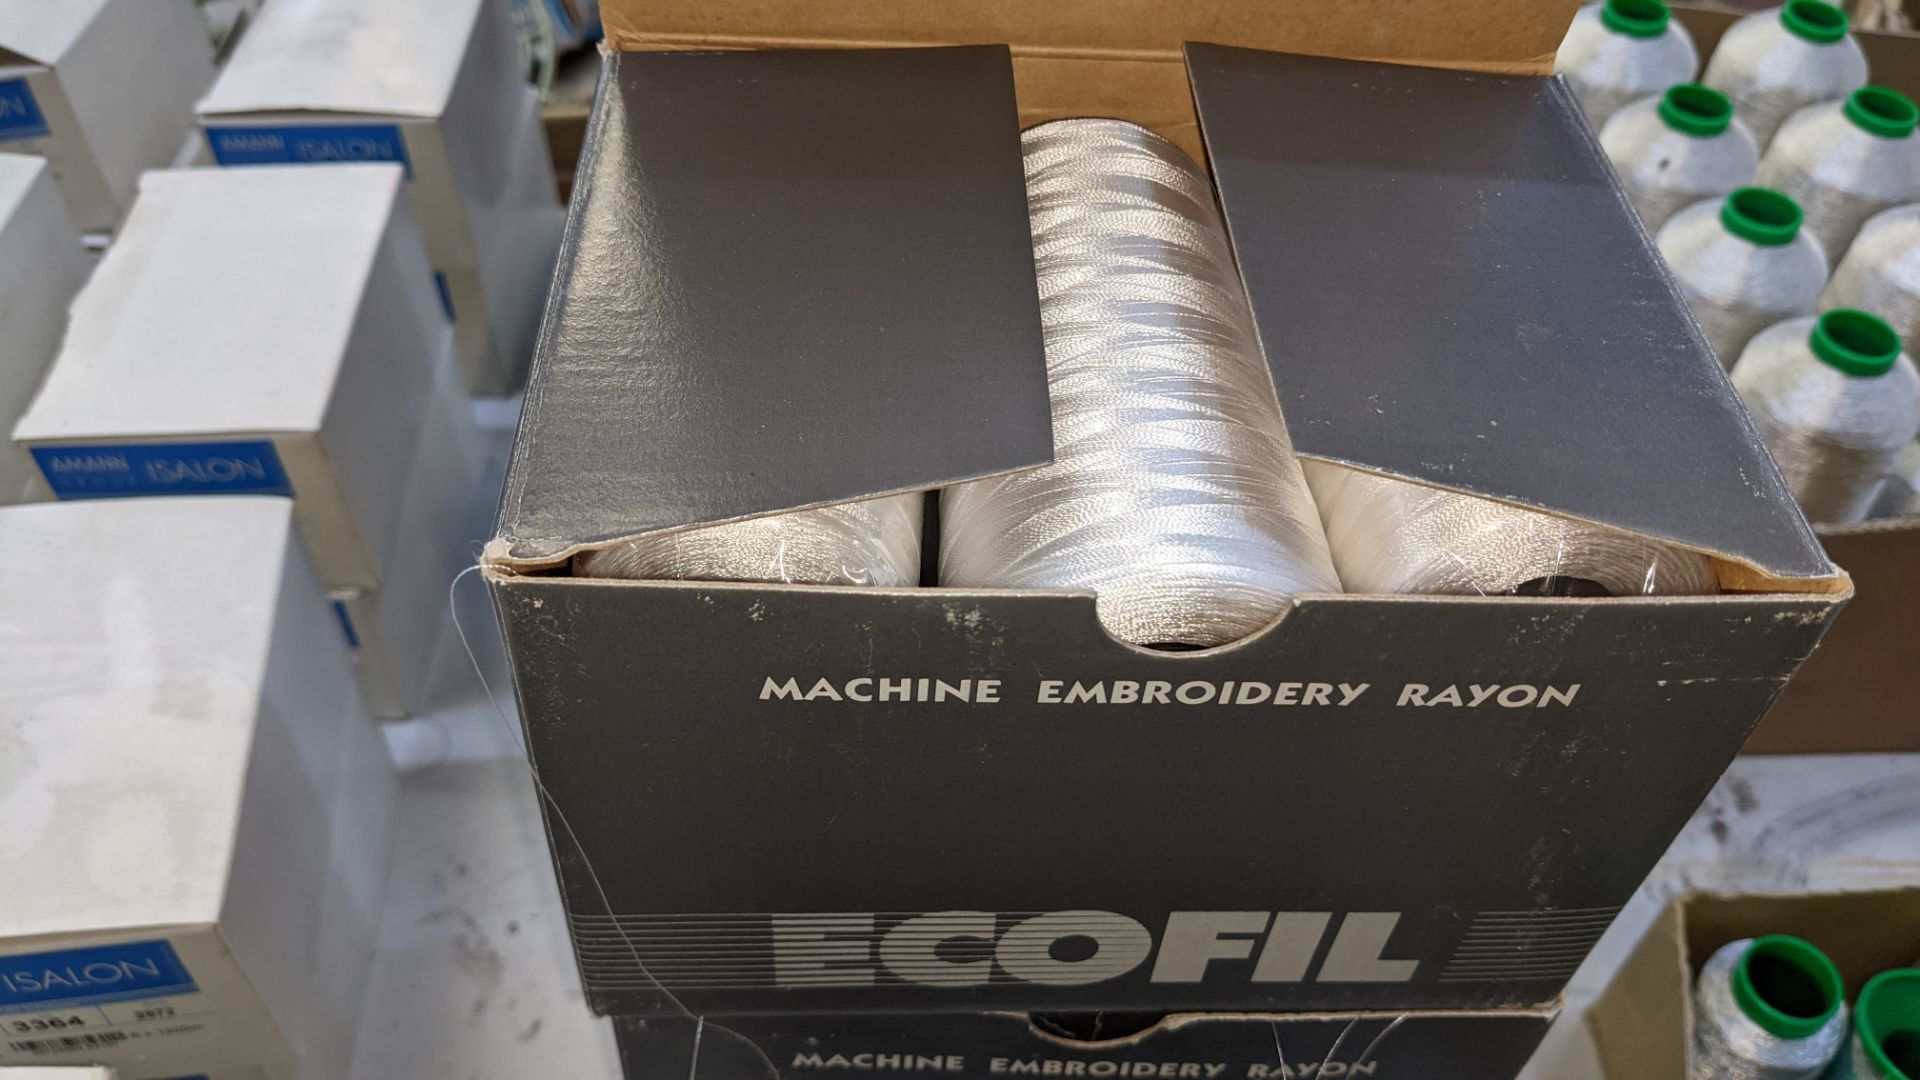 12 boxes of Ecofil rayon machine embroidery thread, all in white - Image 7 of 8